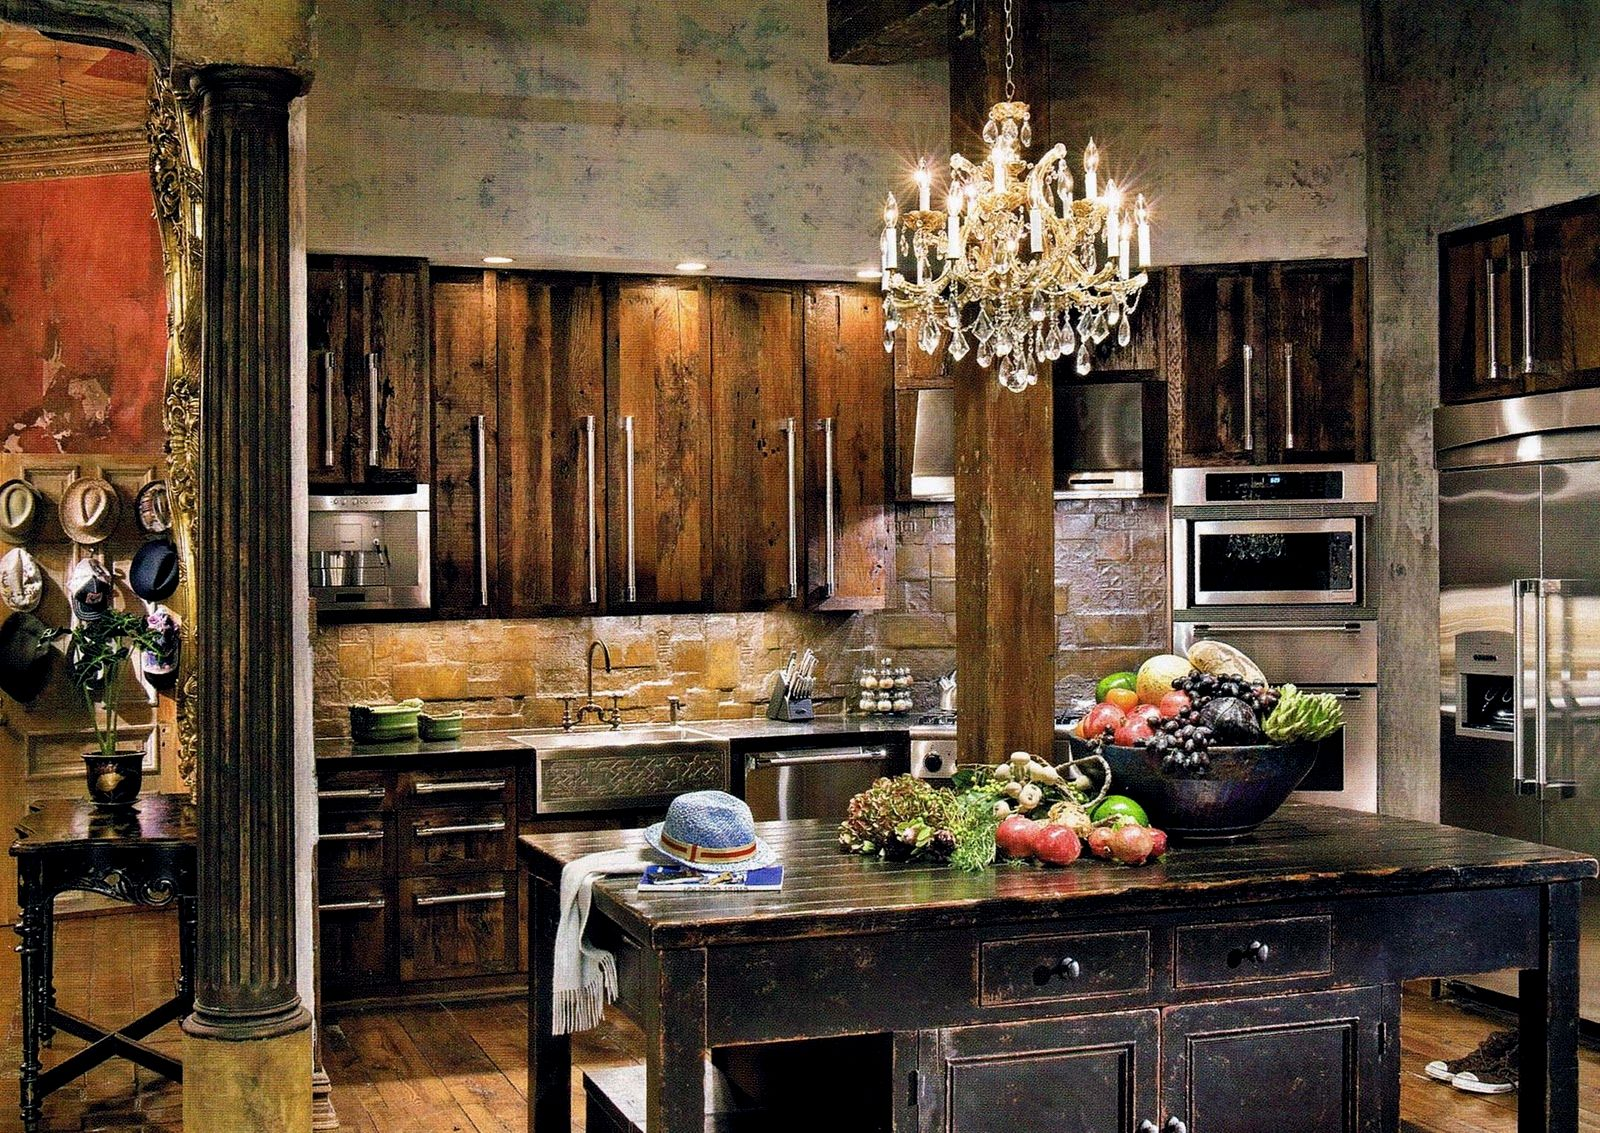 Rustic Kitchen Cabinets - fascinating cherry wood cabinets kitchen décor